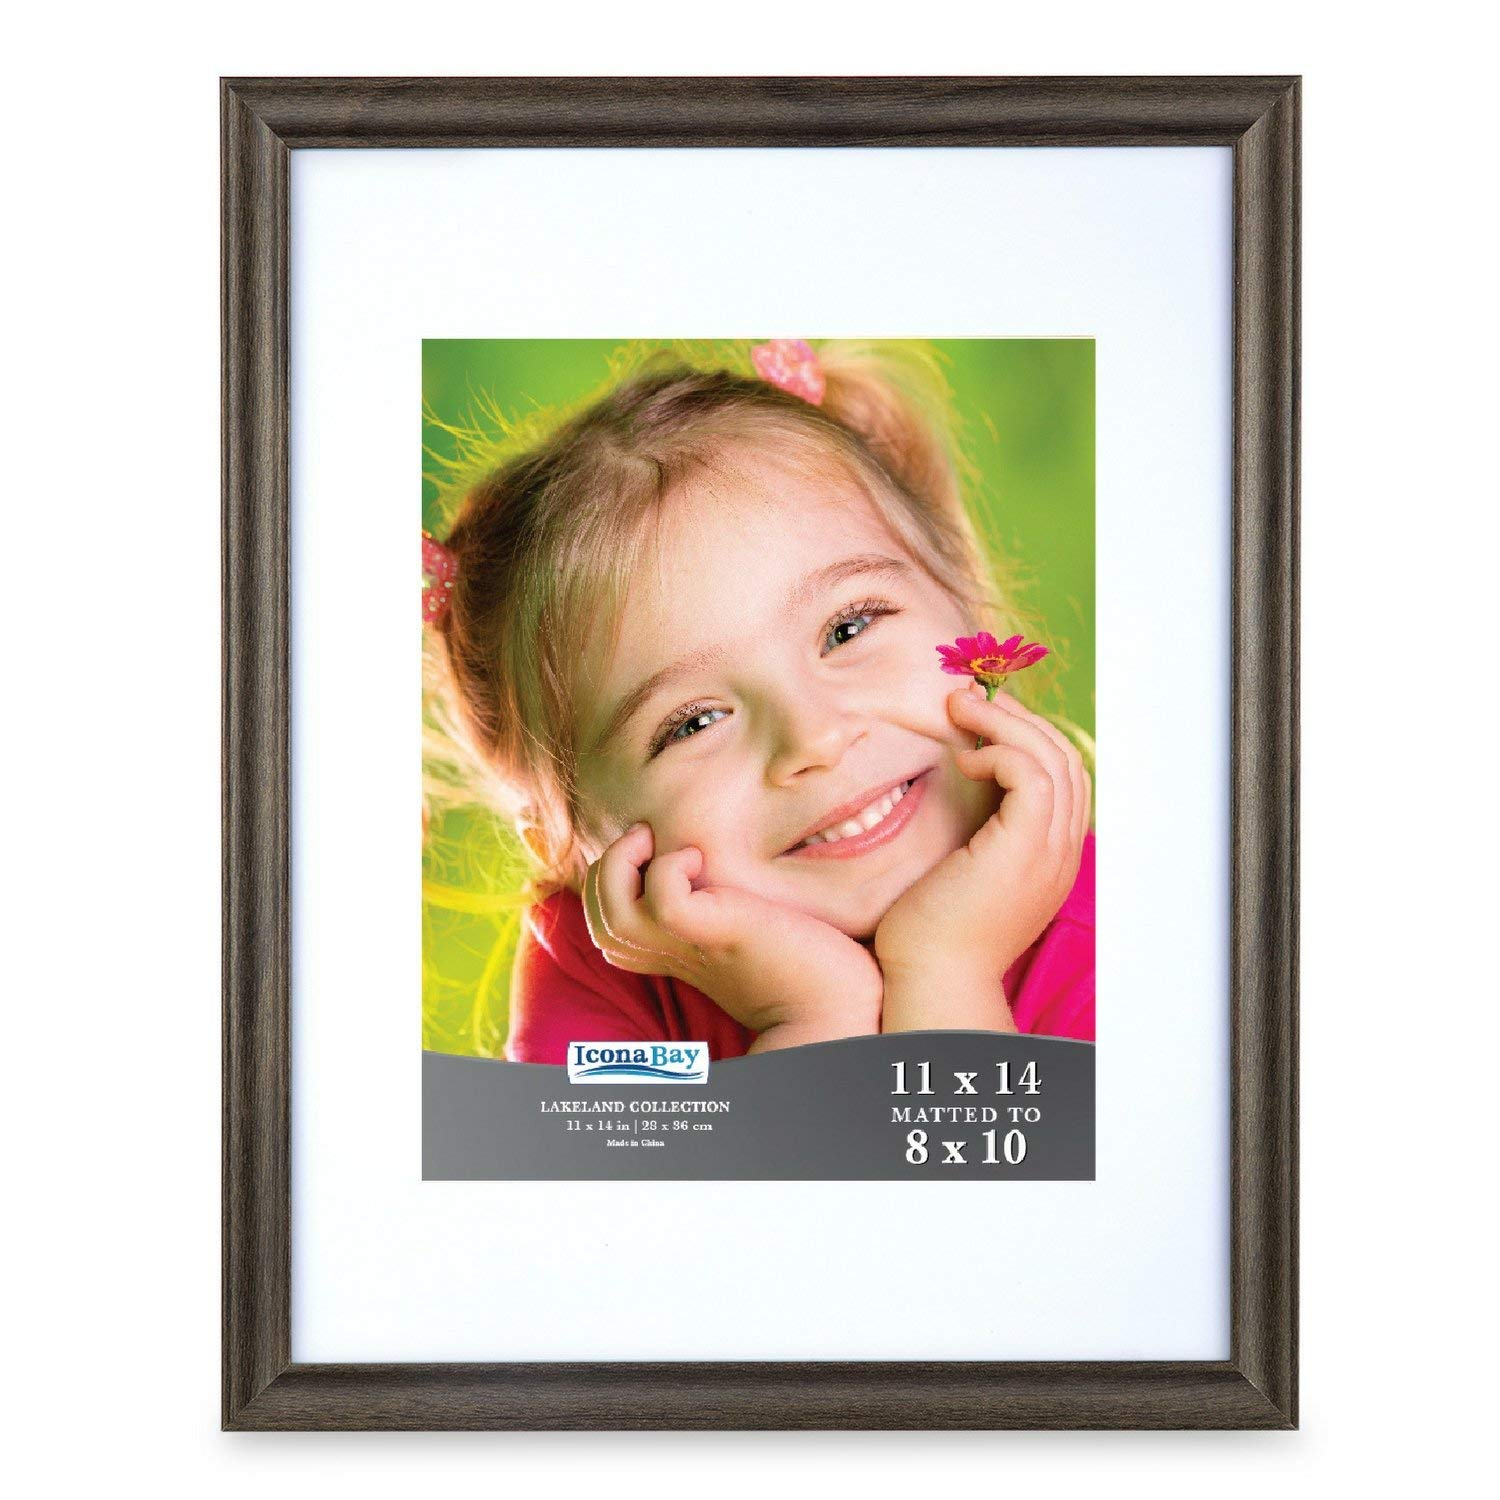 Icona Bay 11x14 Picture Frame with Mat Displays 8x10 Photo, Brown Frame, Wood Frame, Photo Frames for Wall or Table, Photo Frame 11x14, Picture Frame with Mat 8x10, Lakeland Collection